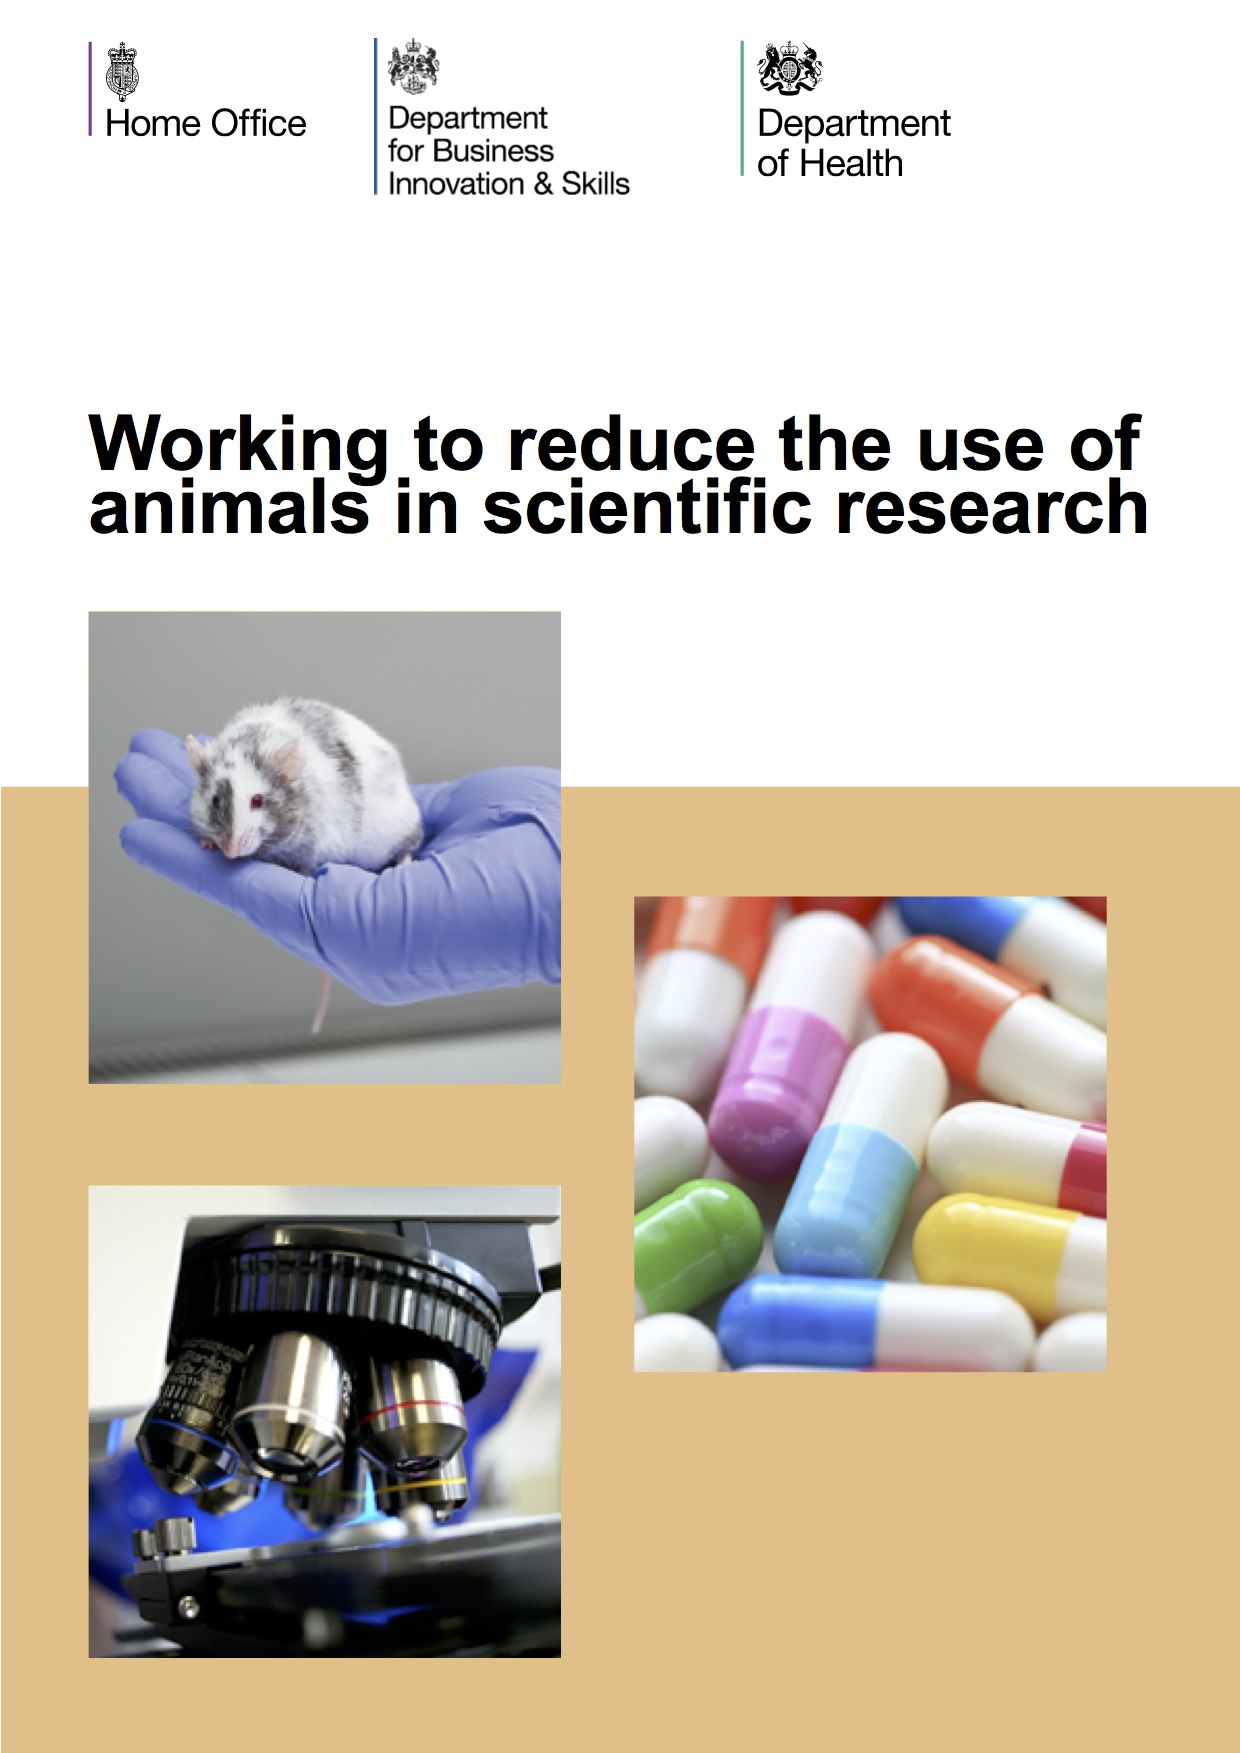 Working to reduce the use of animals in research